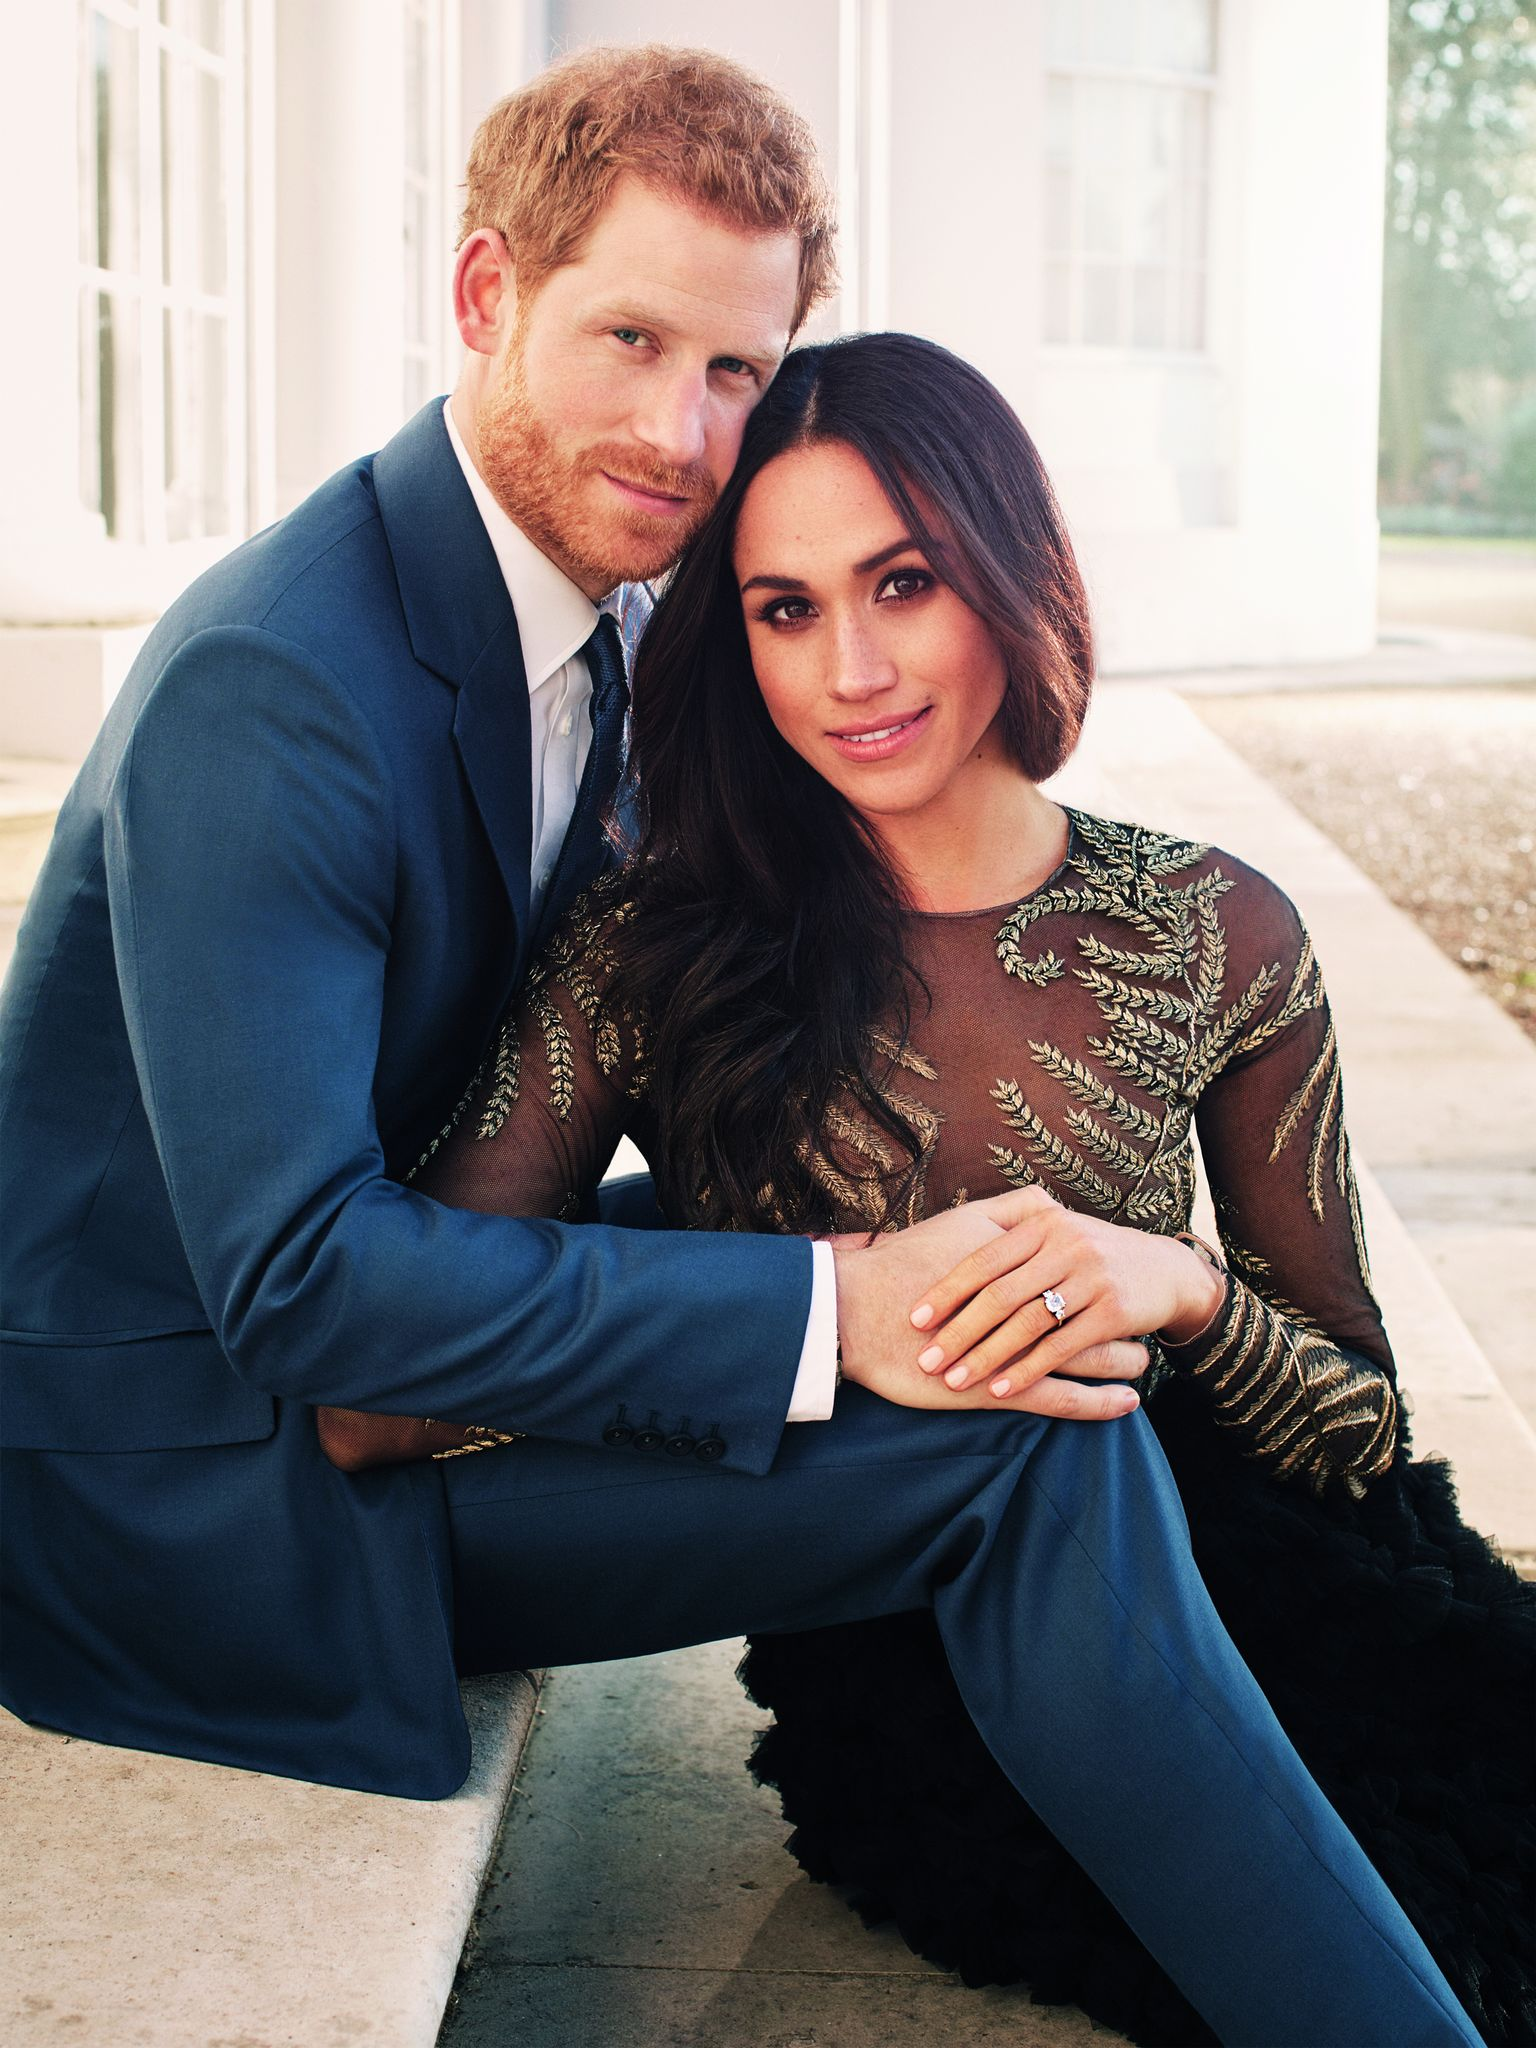 Prince Harry And Meghan Markle Engagement | Getty Images